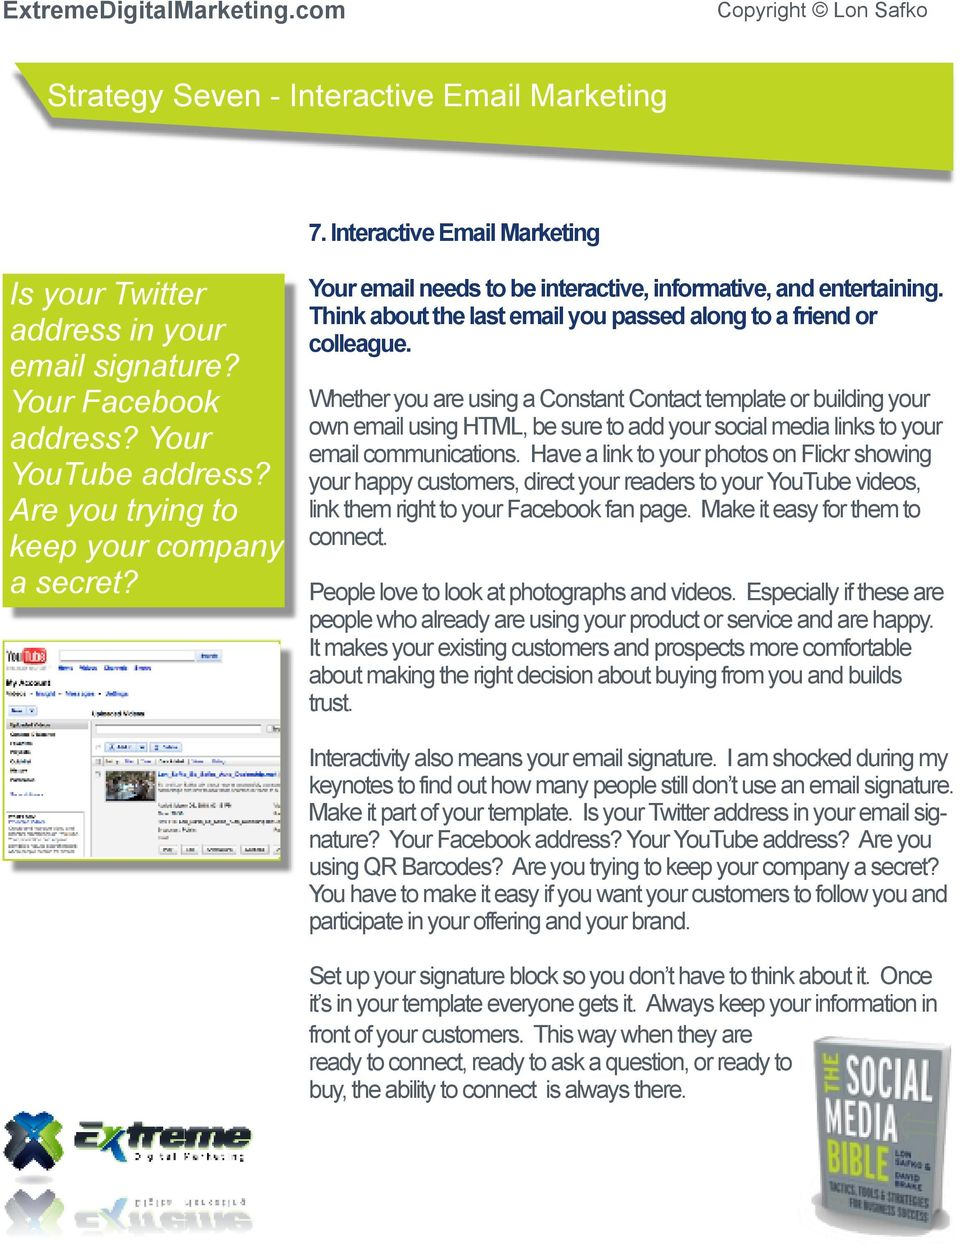 Whether you are using a Constant Contact template or building your own email using HTML, be sure to add your social media links to your email communications.